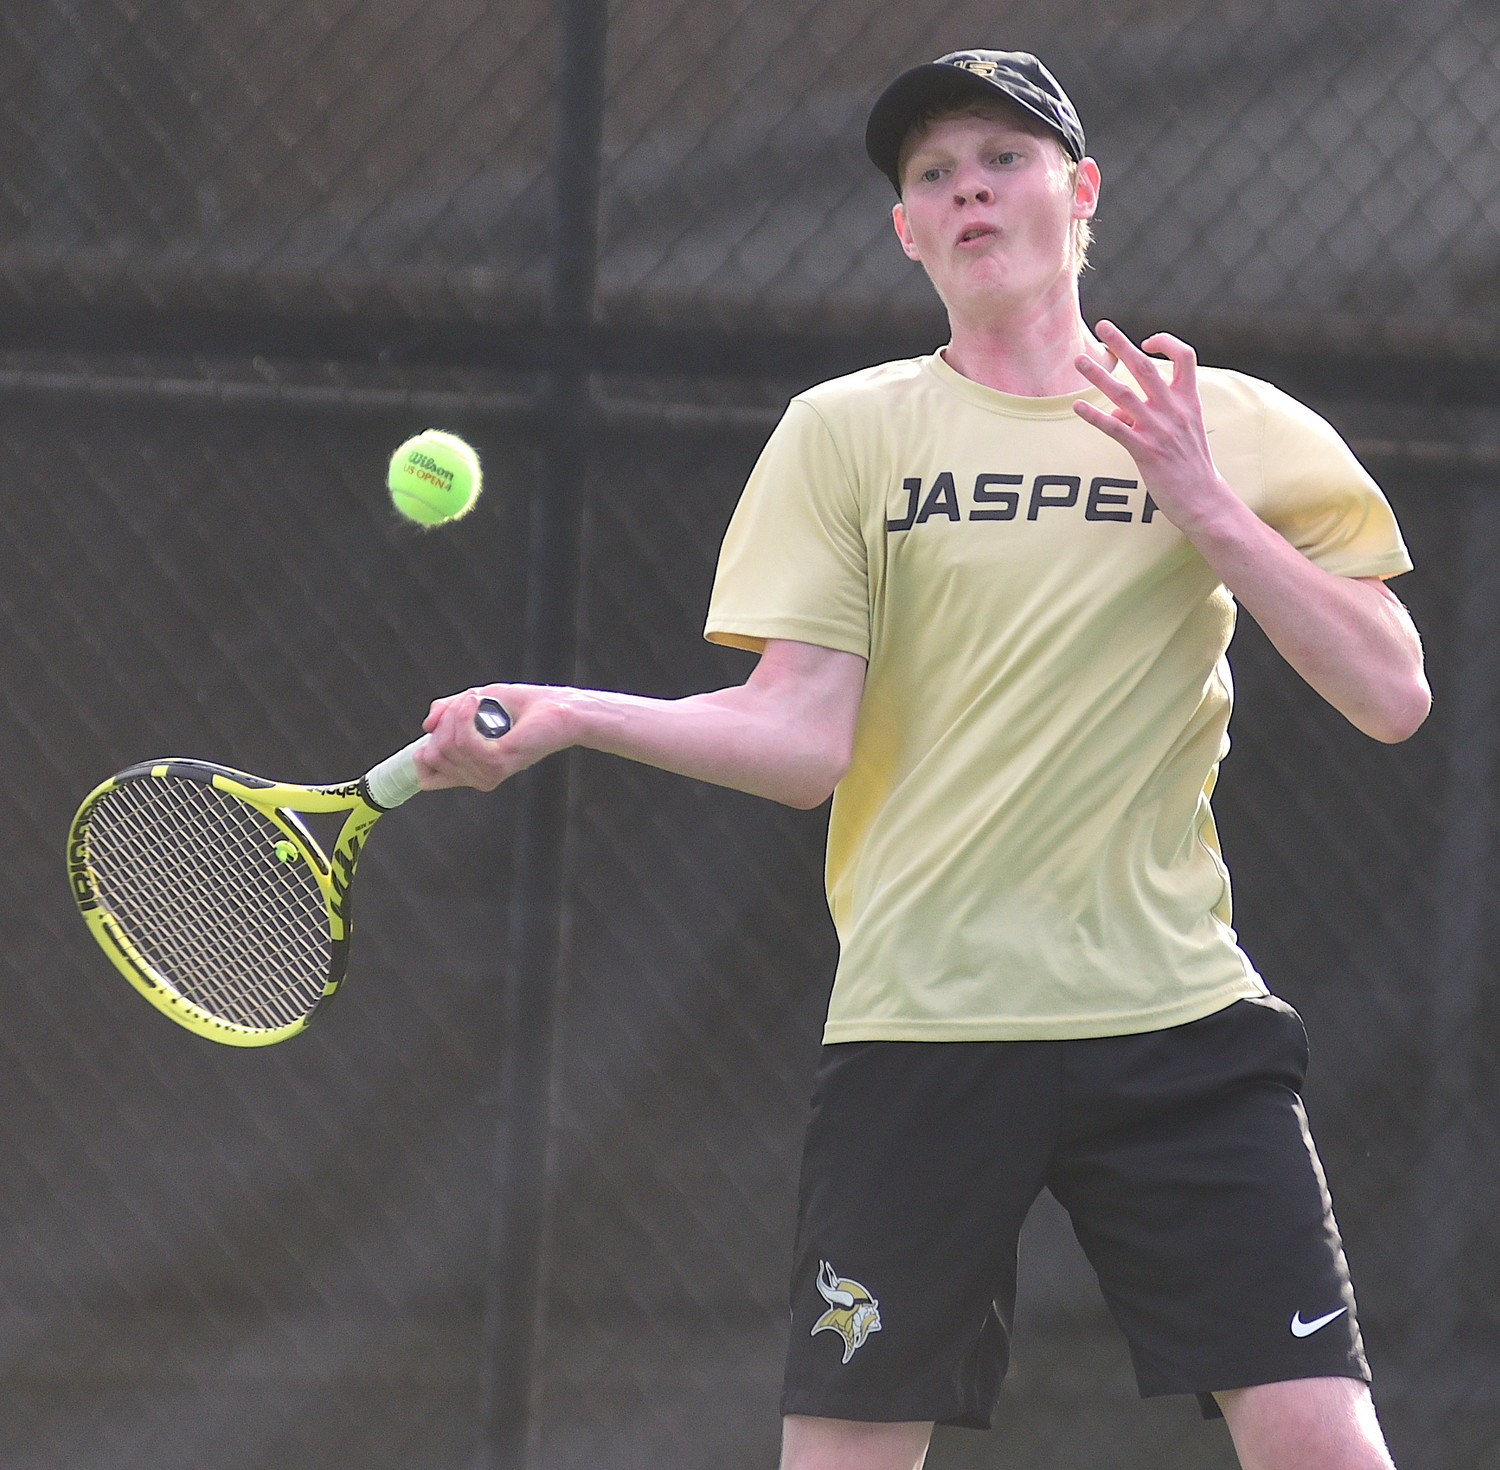 Mason Woodman hits a forehand in his No. 1 singles match against Indian Springs